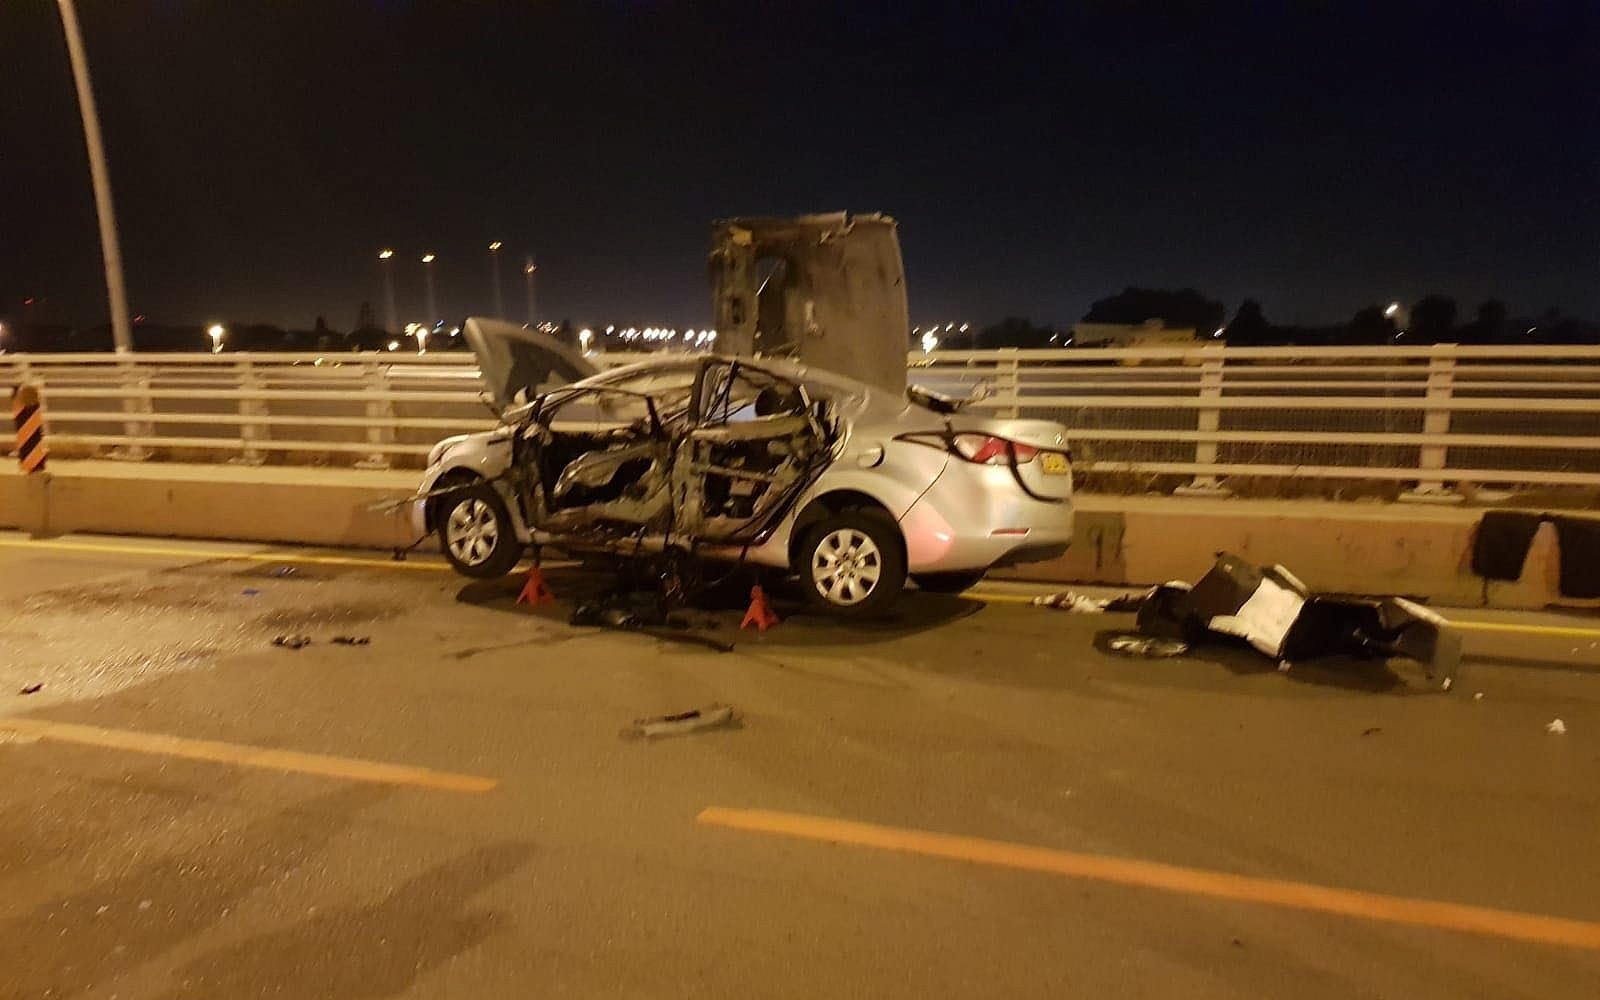 Badspiegel Jolled Driver Killed In Car Bombing Outside Of Tel Aviv The Times